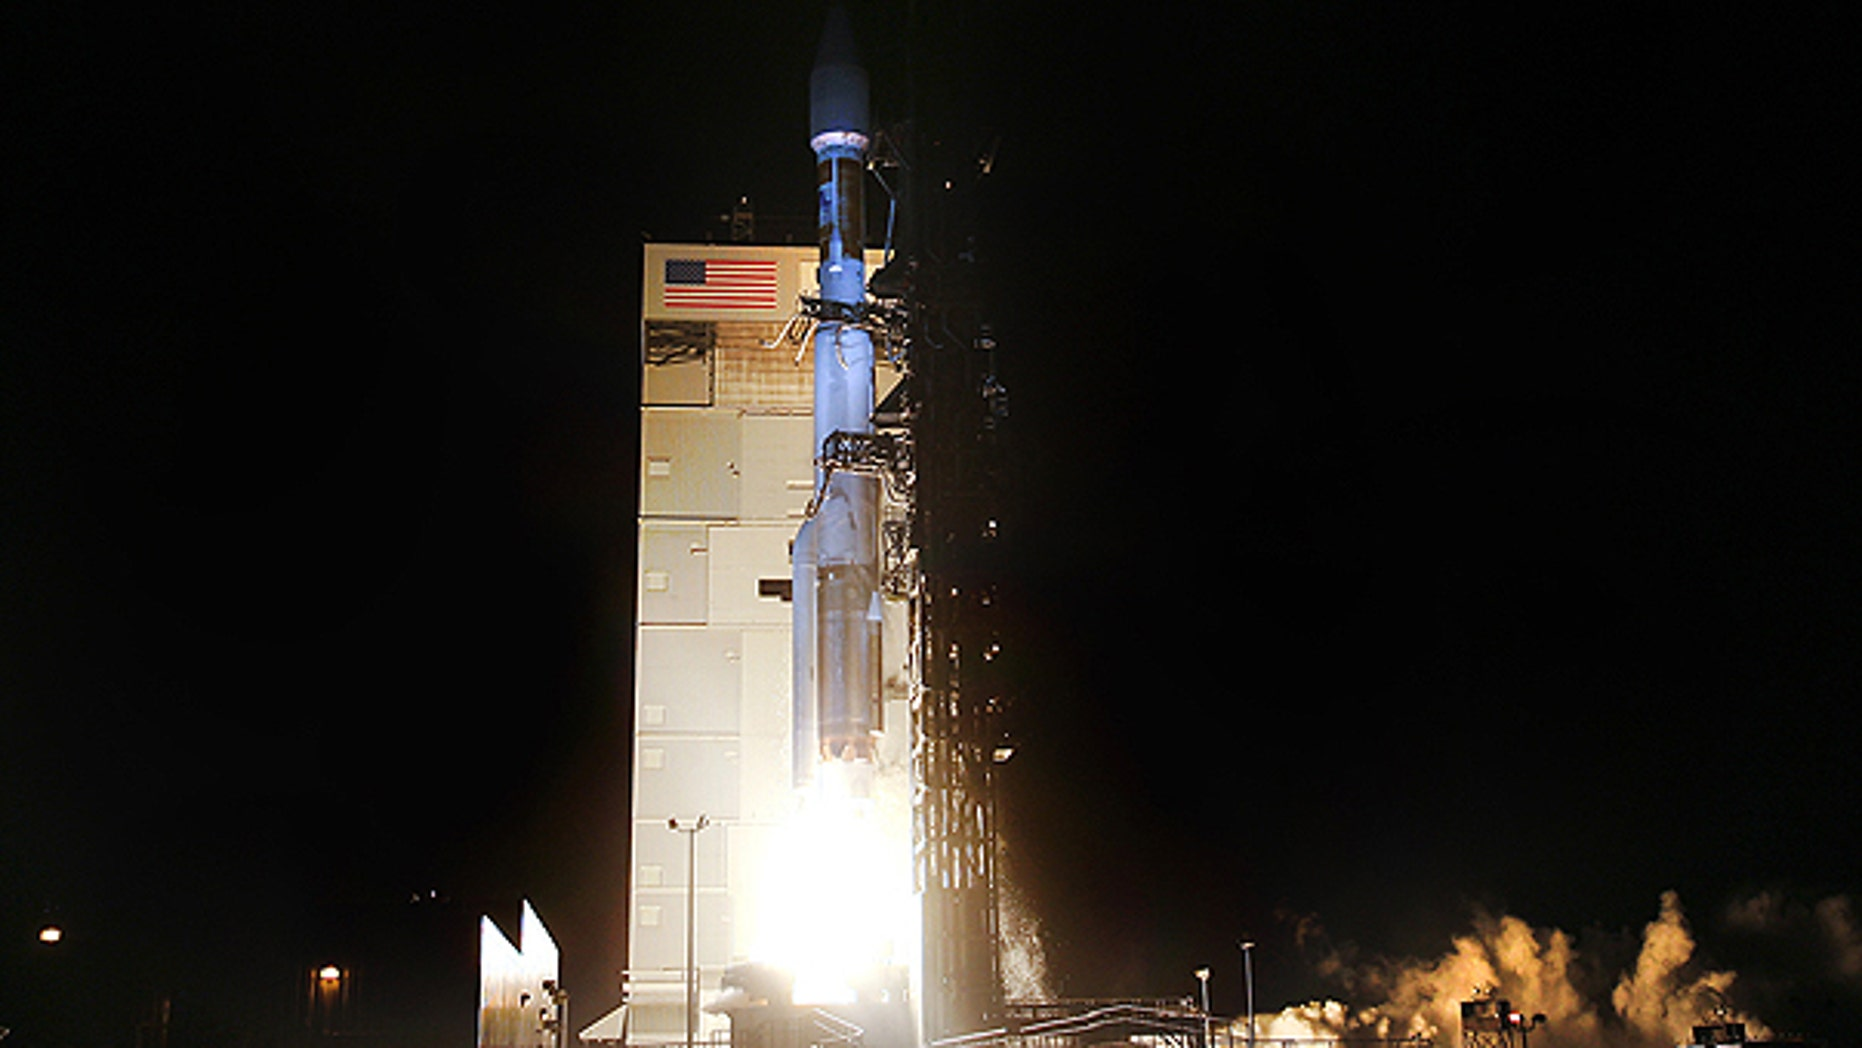 April 14: An Atlas 5 rocket blasts off at 9:24 p.m. (PDT) from Space Launch Complex-3 at Vandenberg Air Force Base to place a National Reconnaissance Office satellite into orbit.